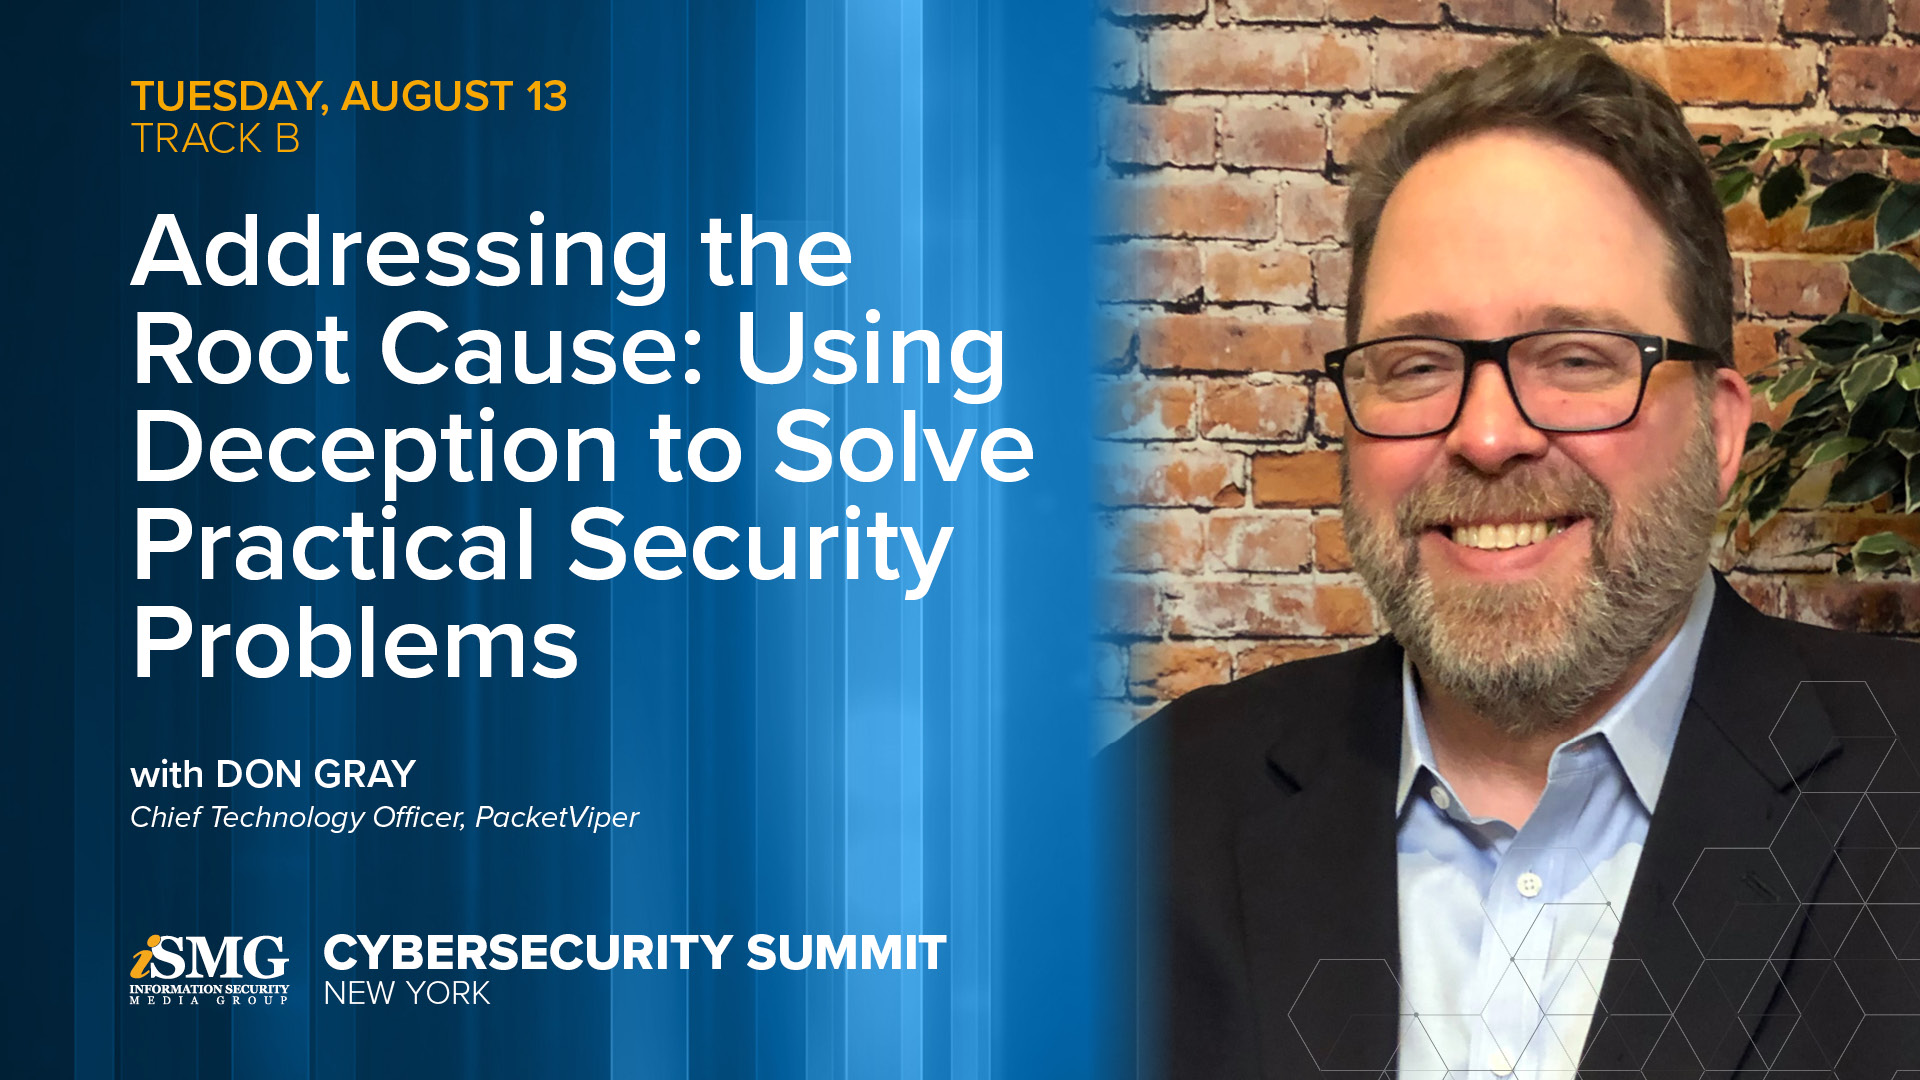 SecureSky Sponsoring ISMG Cybersecurity Summit